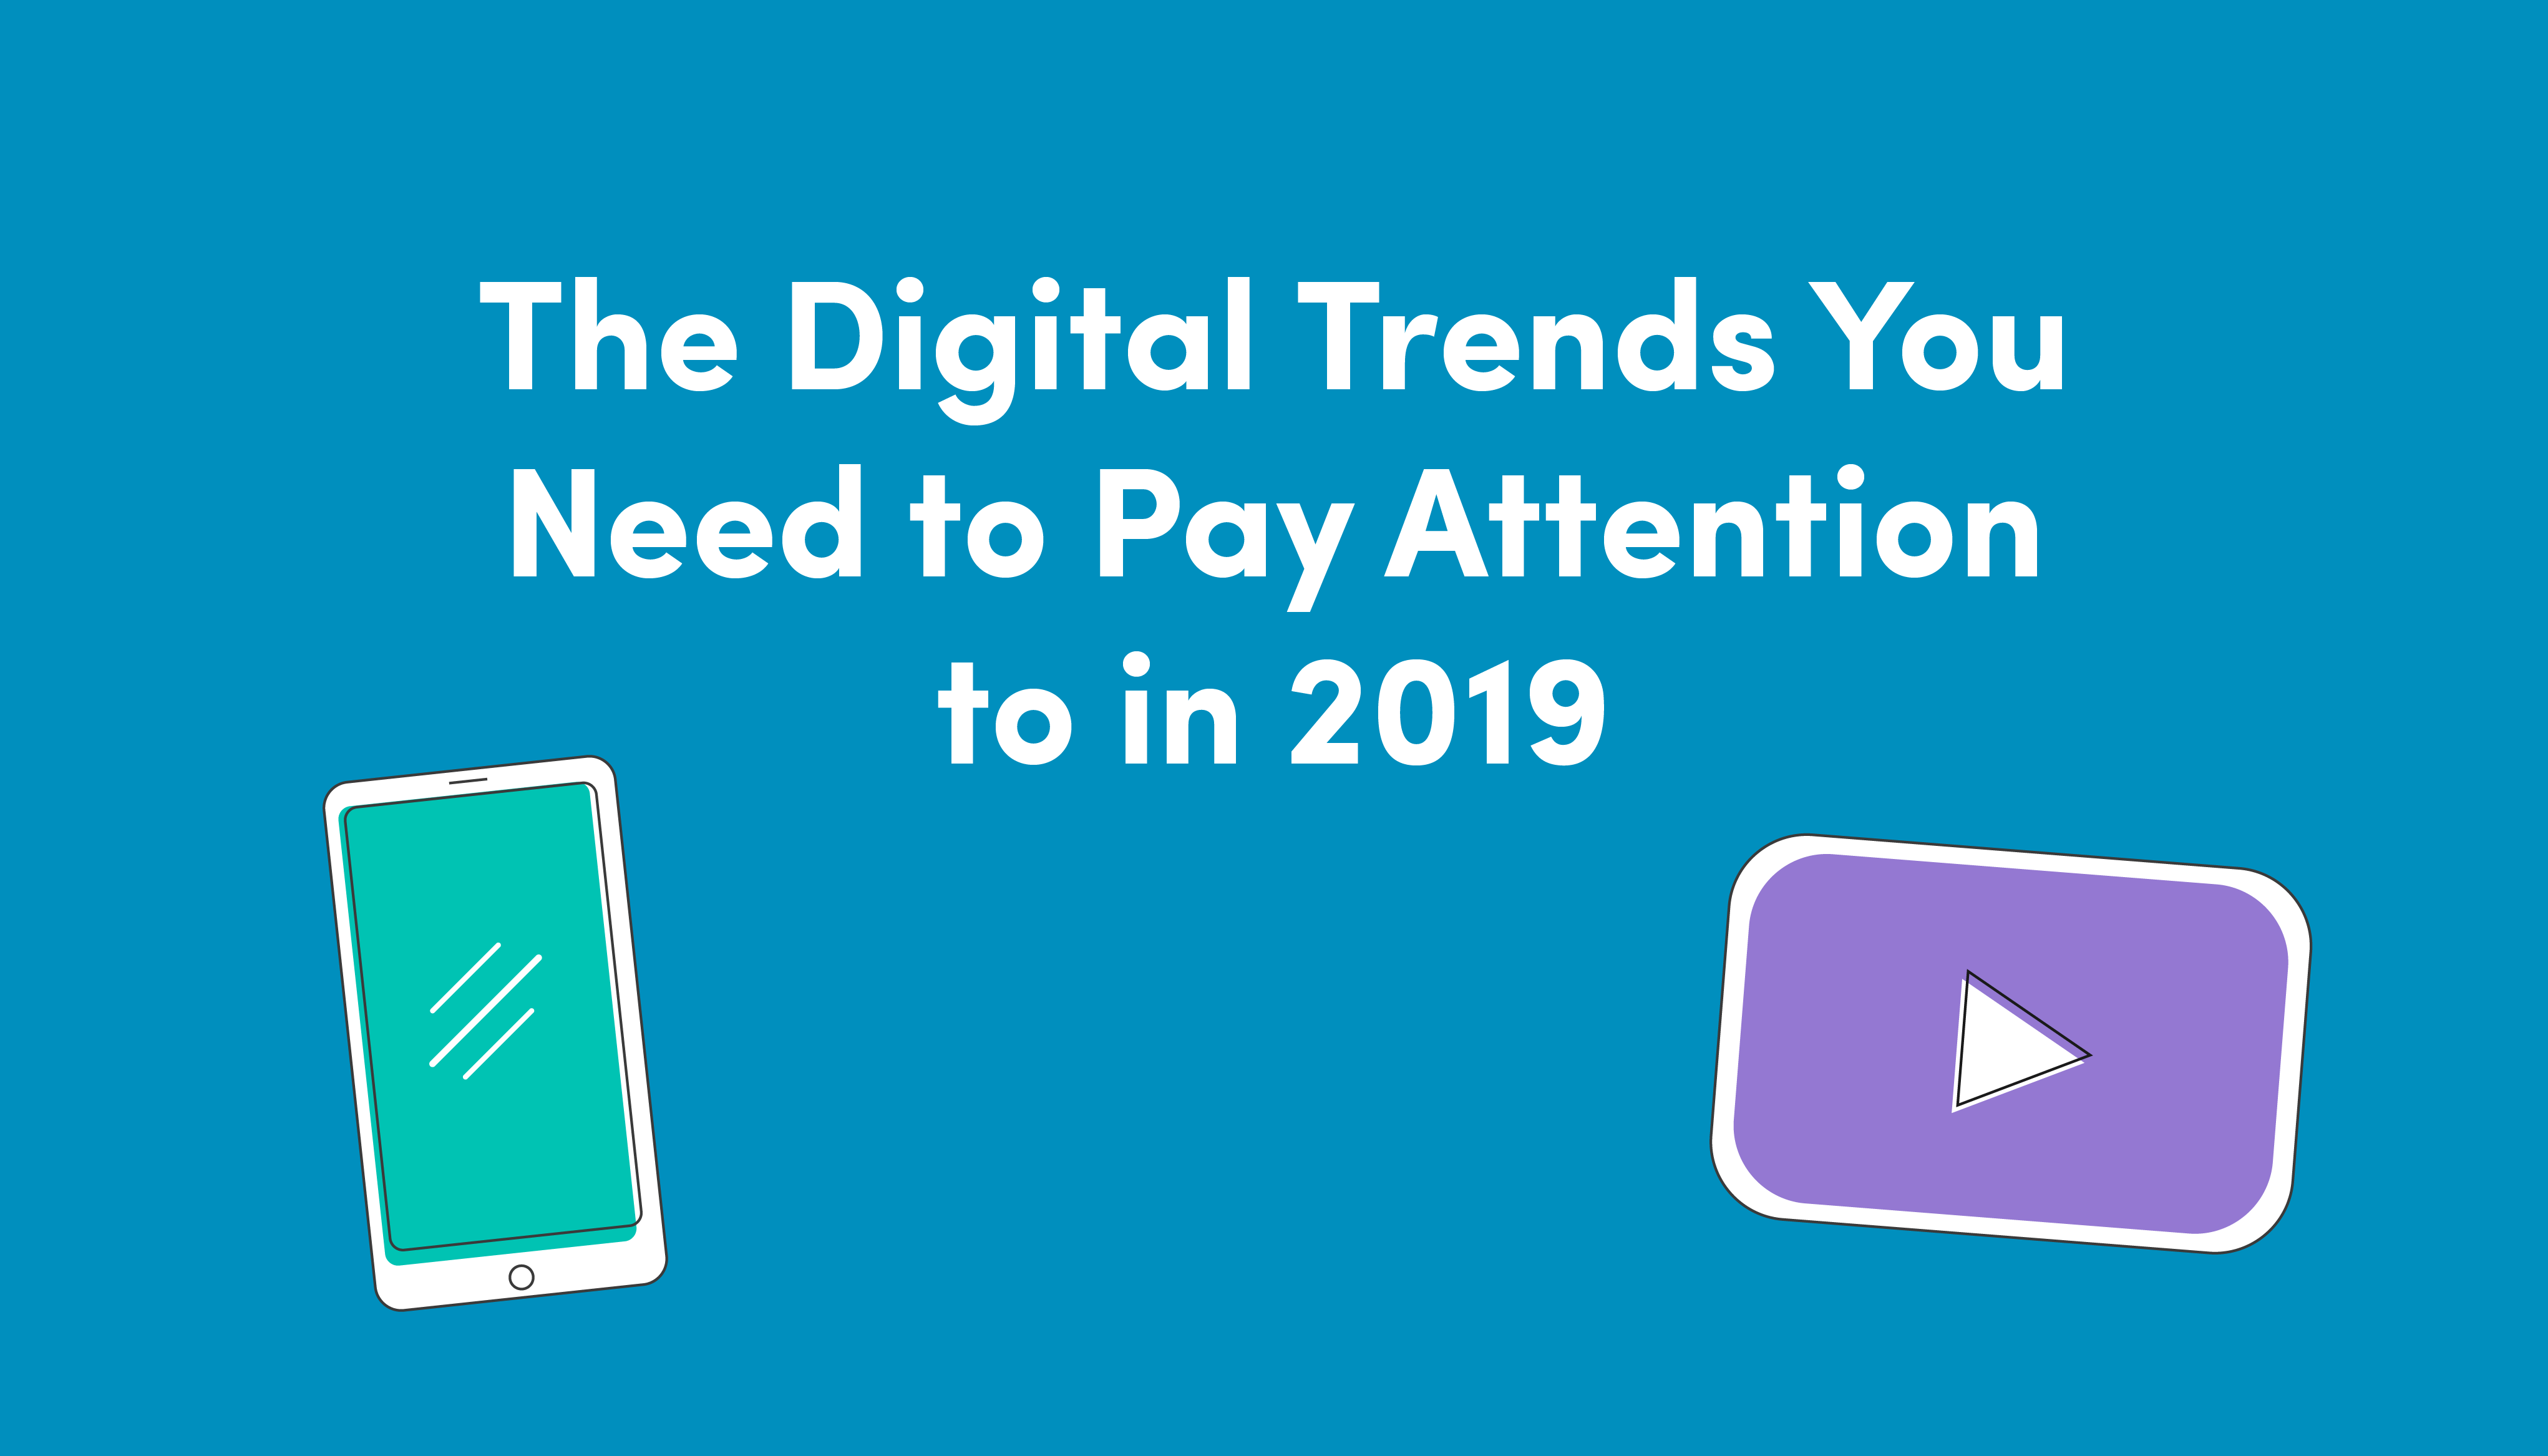 The Digital Trends You Need to Pay Attention to in 2019